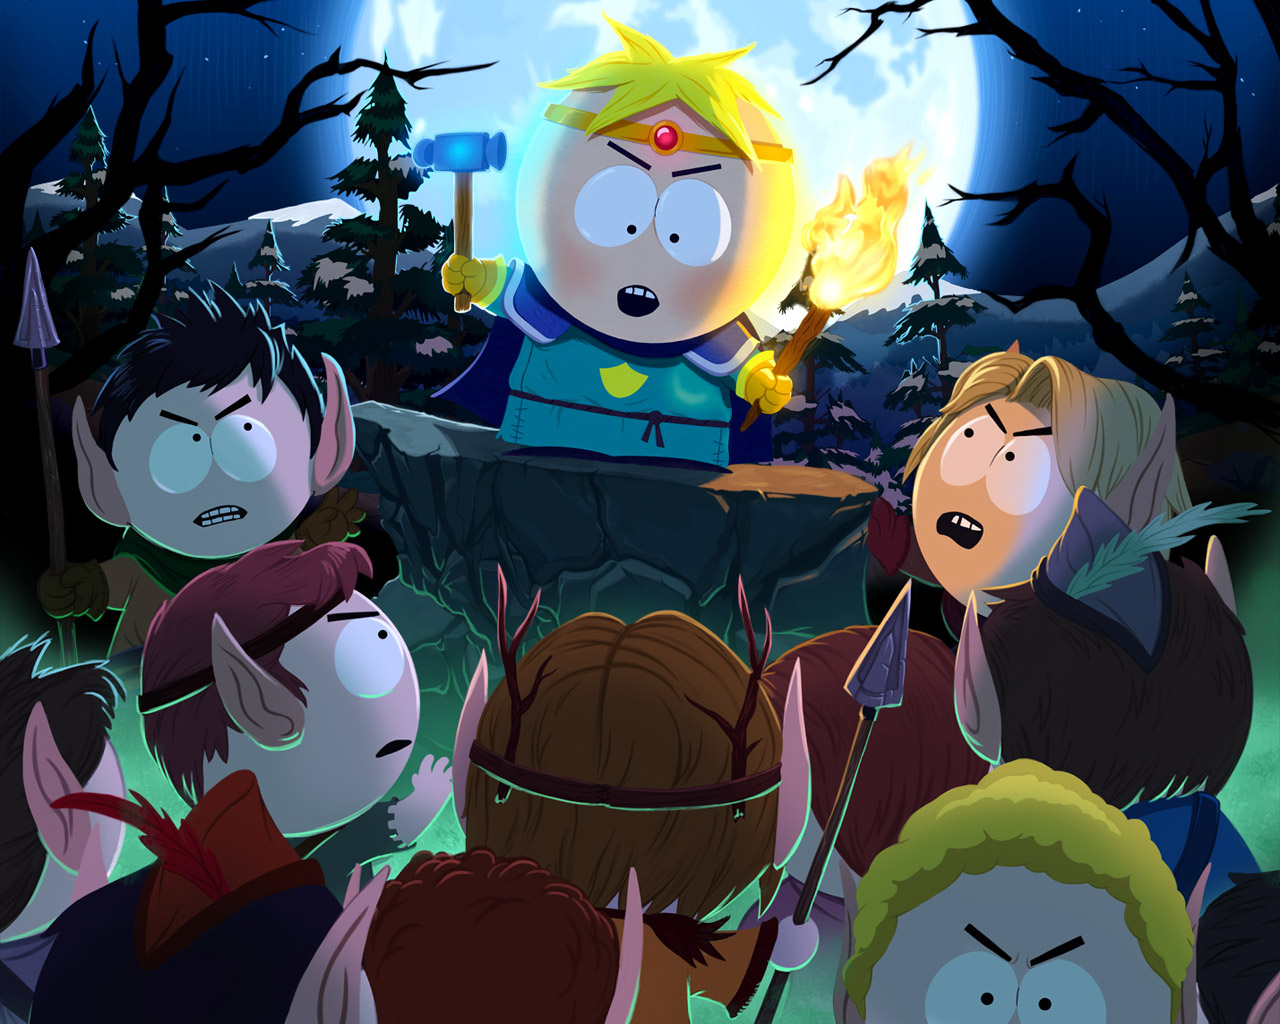 South Park: The Stick of Truth Wallpaper in 1280x1024